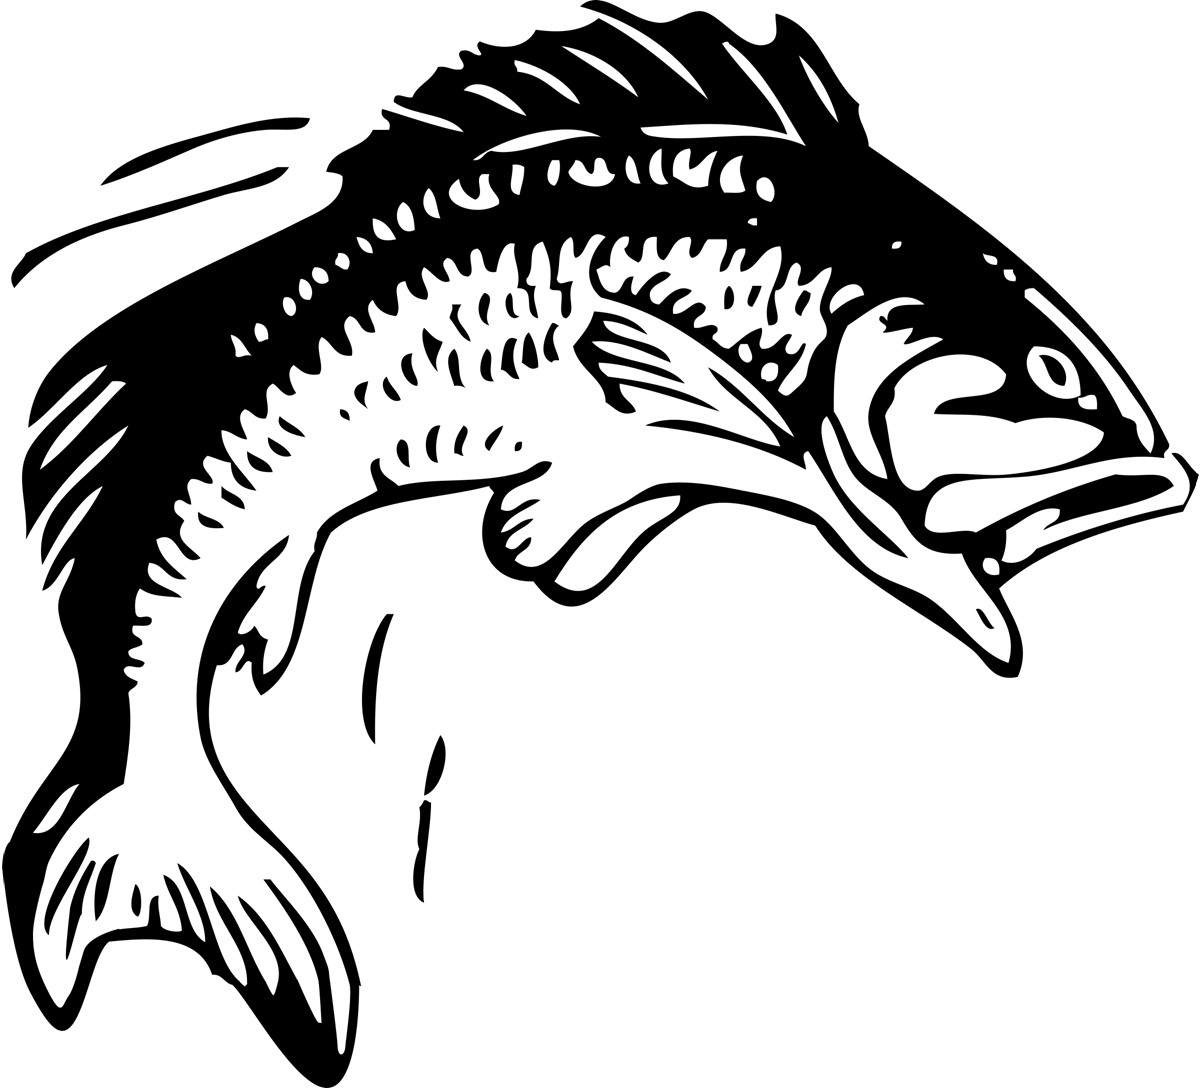 Long tail fish clipart clipart freeuse stock Fish Clip Art Printable Free | Clipart Panda - Free Clipart Images clipart freeuse stock